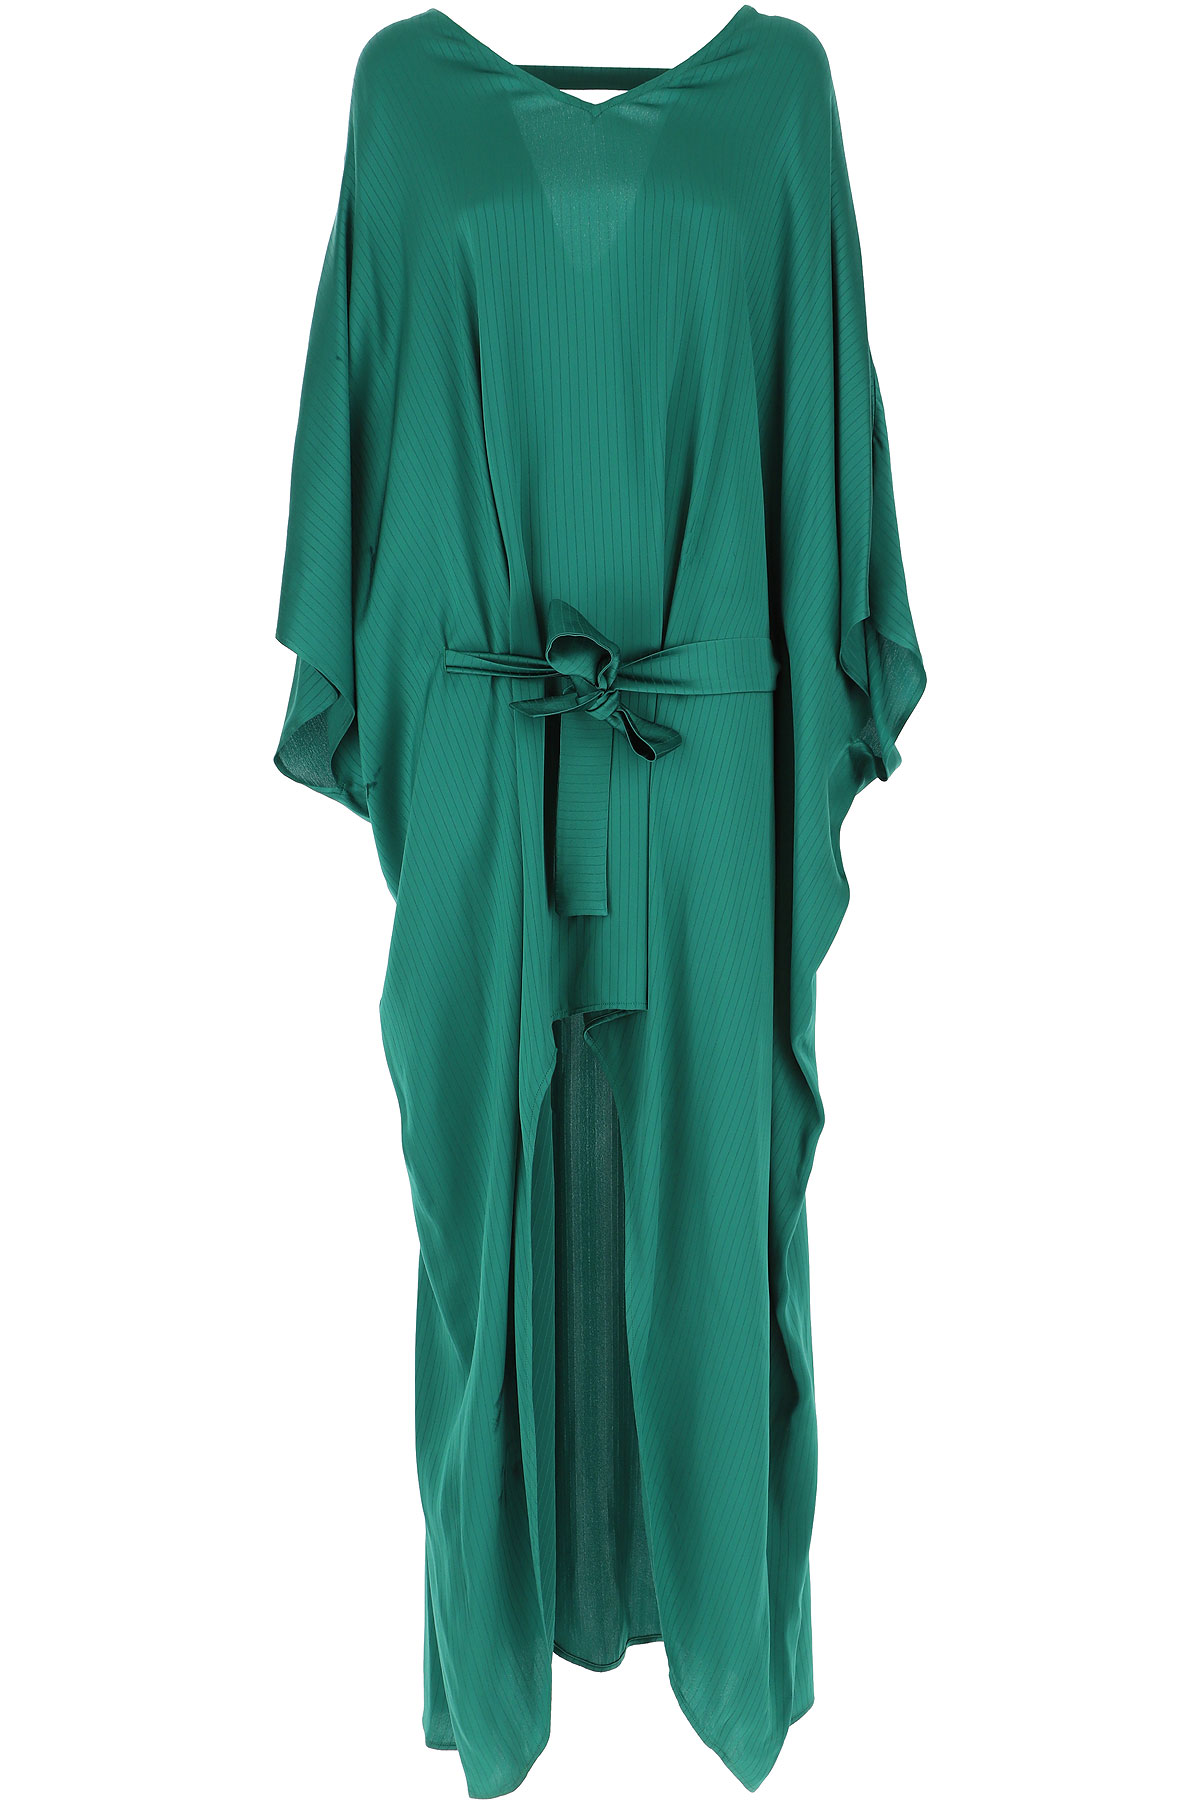 Federica Tosi Dress for Women, Evening Cocktail Party On Sale, Green, Viscose, 2019, 2 4